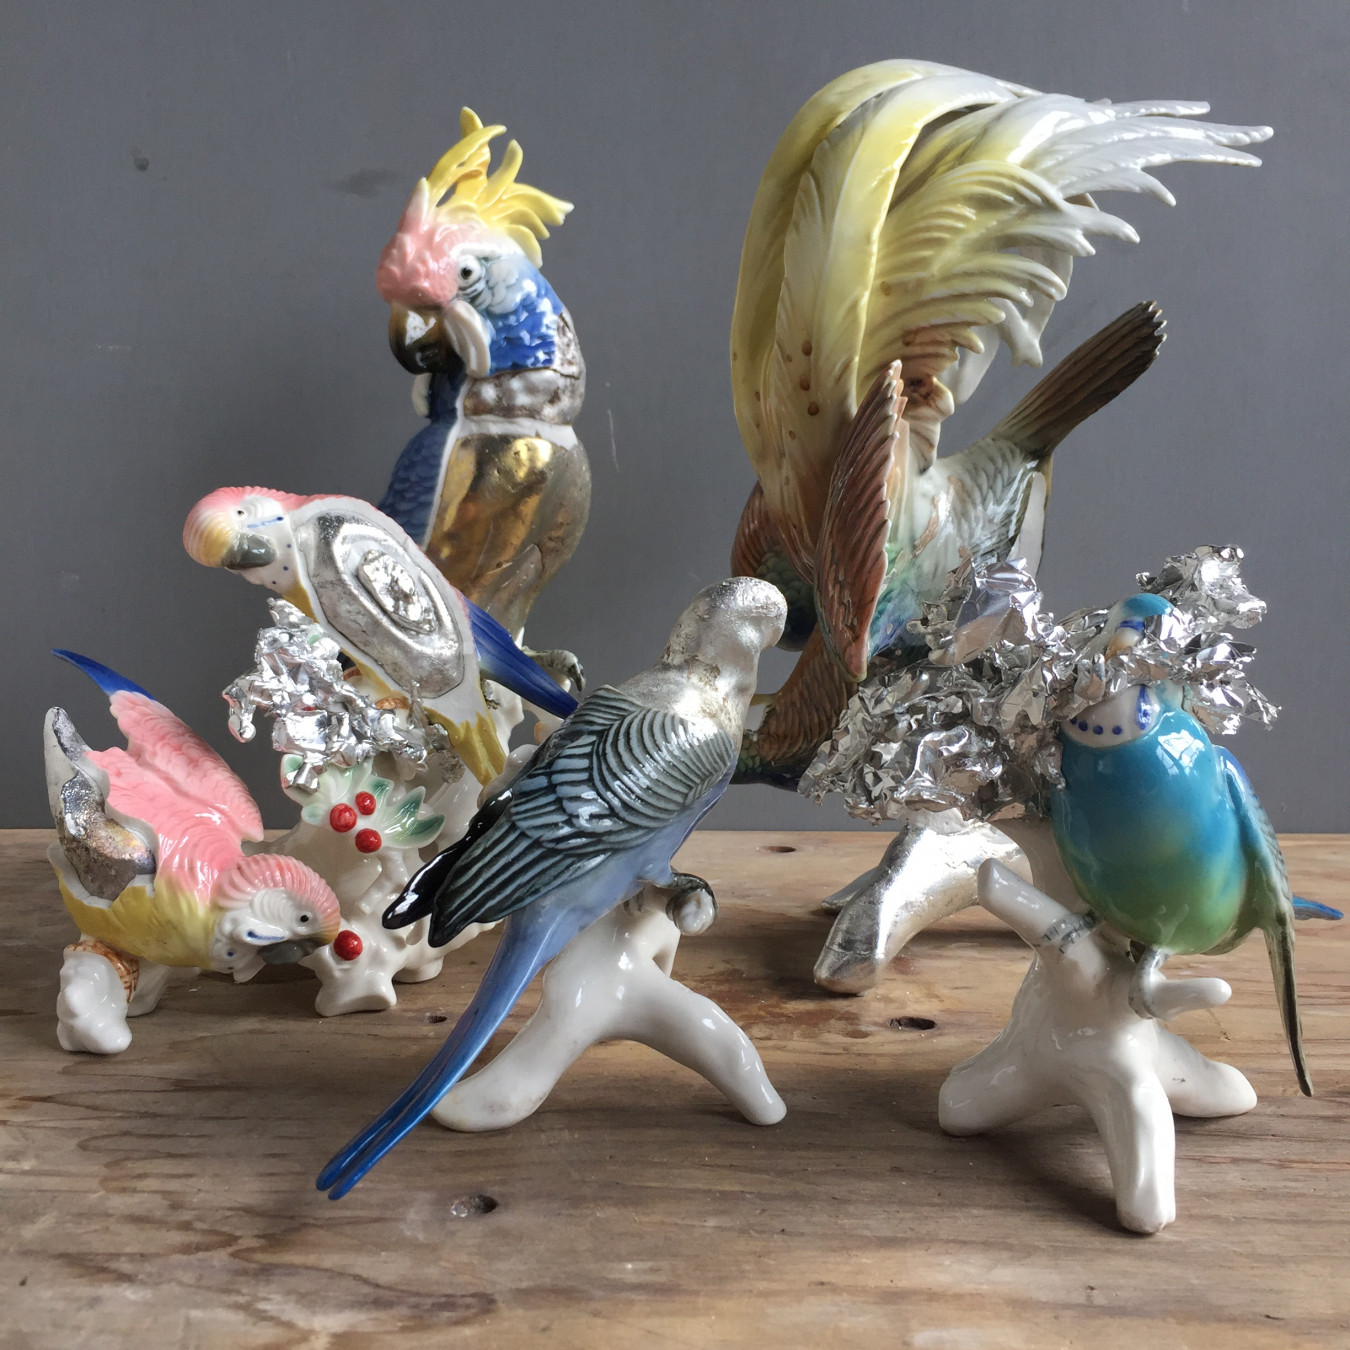 Image of a group of exotic ceramic birds made be Karl Erns, these have been altered by pouring molten pewter into the hollow parrots and budgies